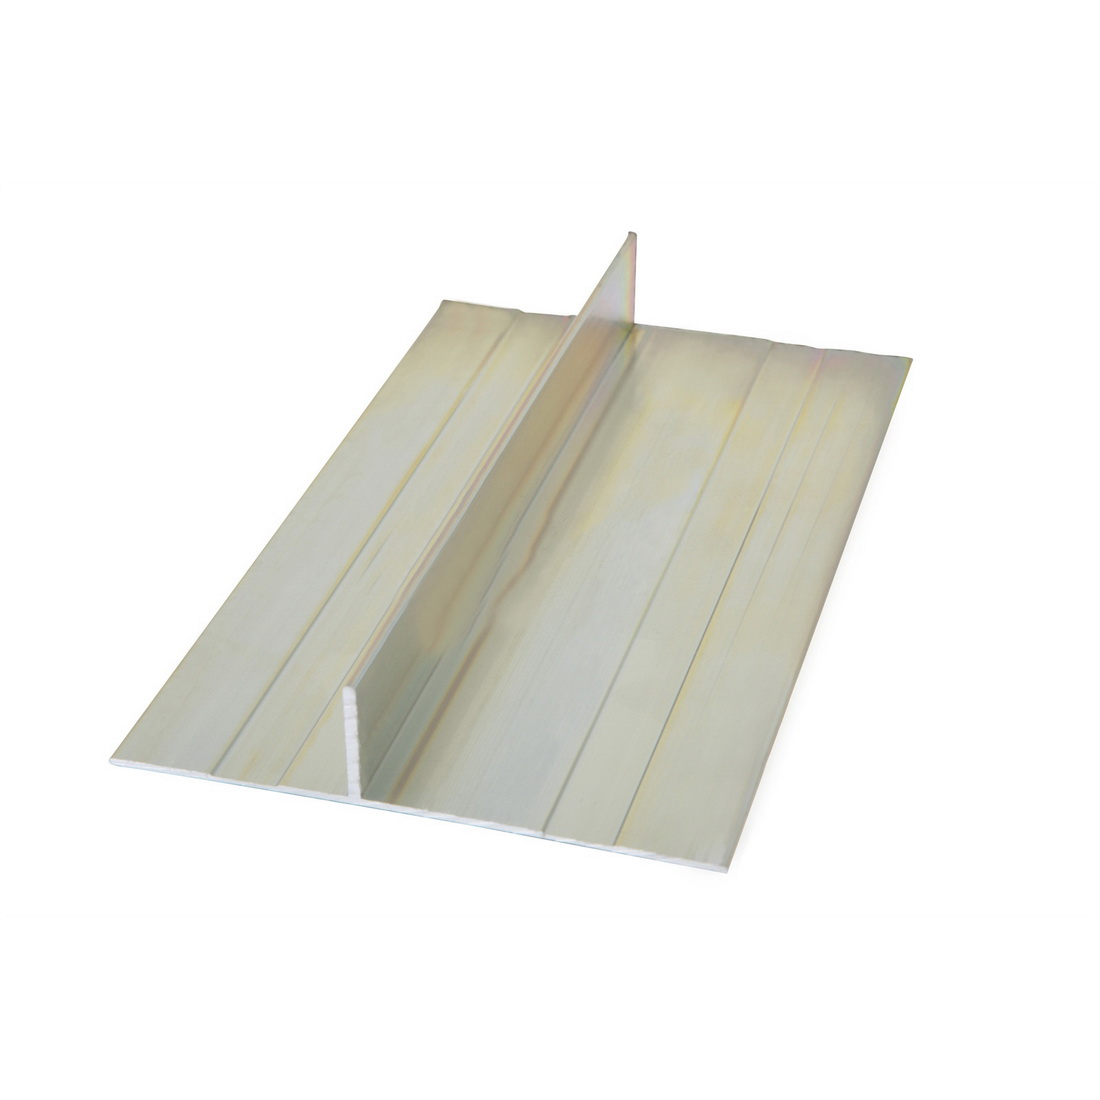 Linea Oblique Weatherboard Aluminium Trimline Joint Flashing 3000mm